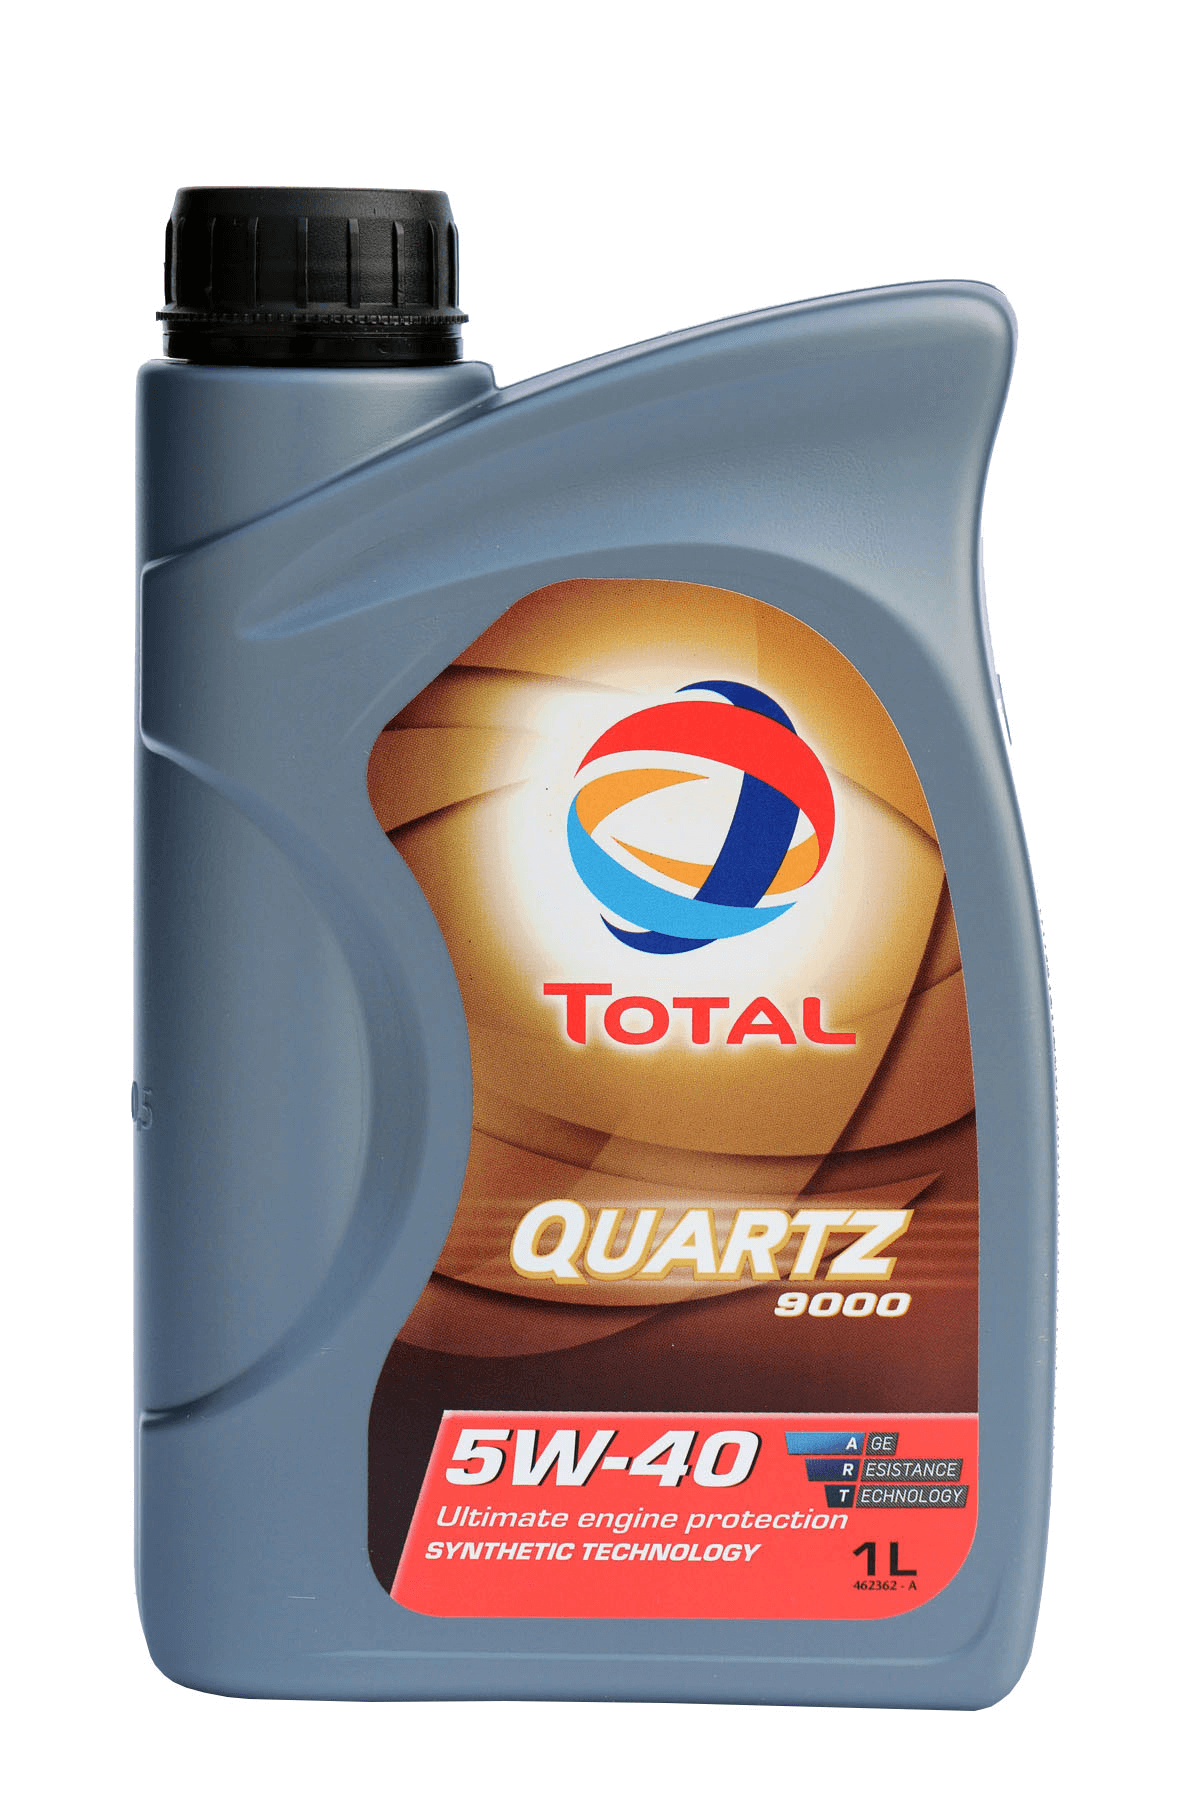 Total Quartz 9000 5W-40 Motoröl, 1l